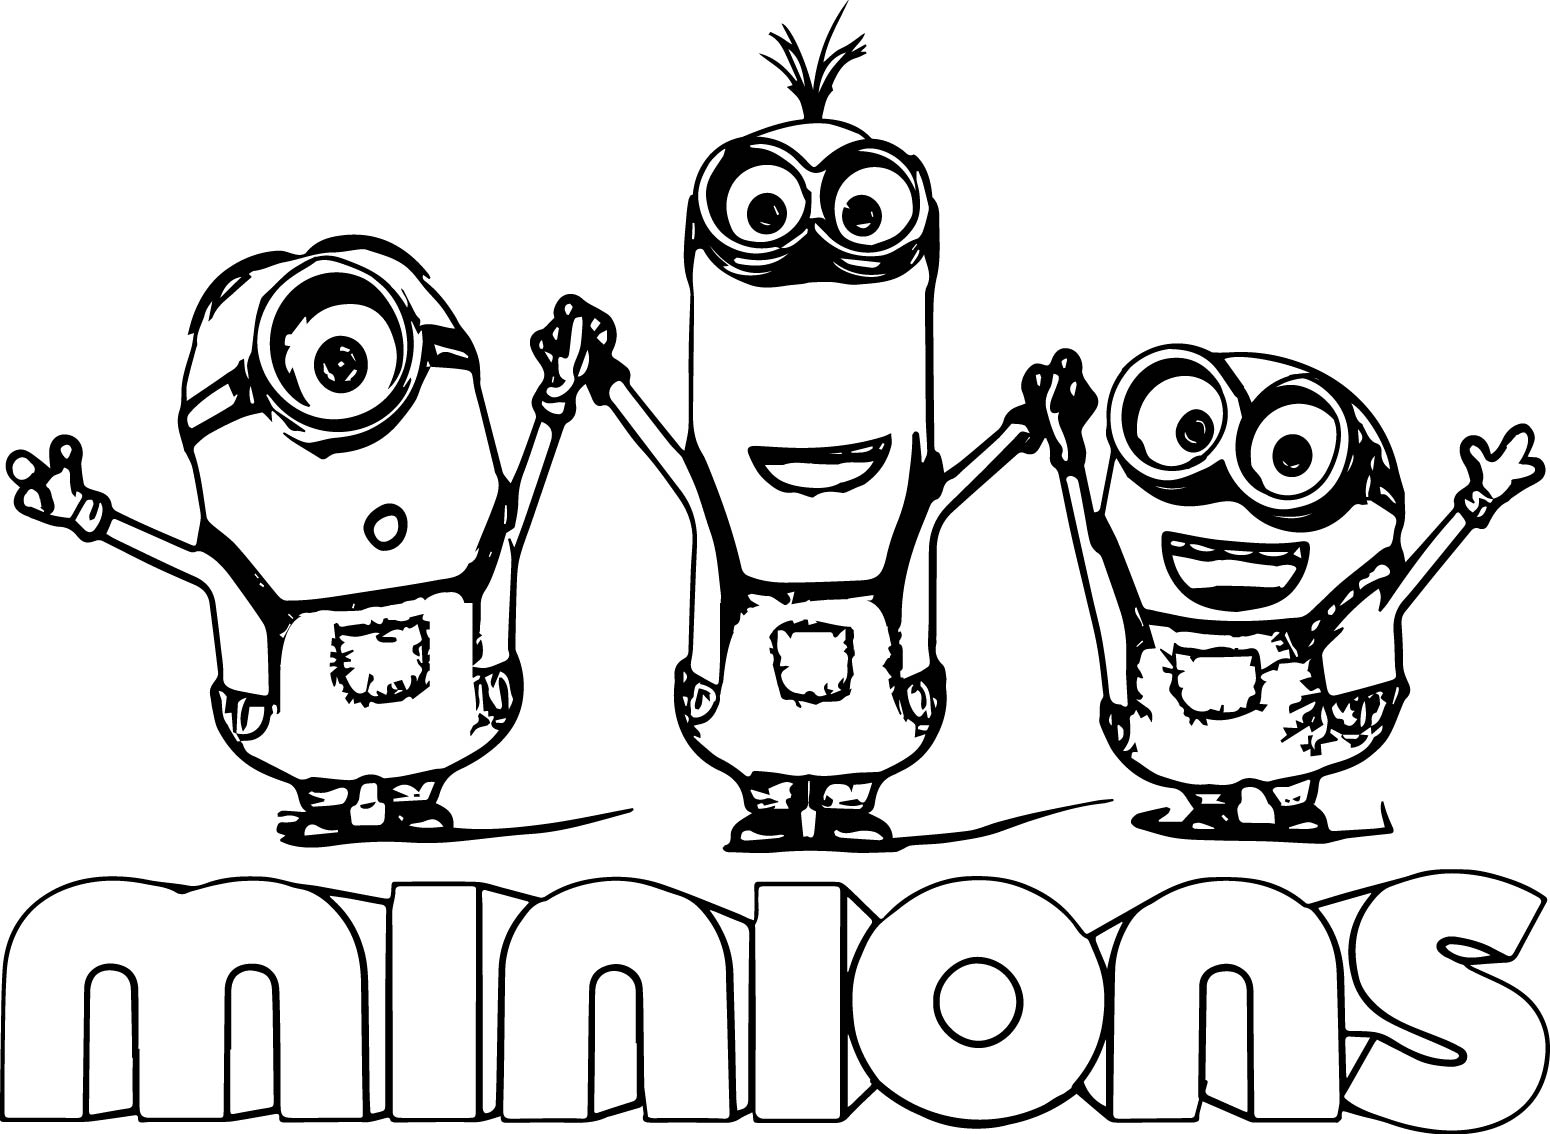 minion text minions backyard bash coloring page wecoloringpage